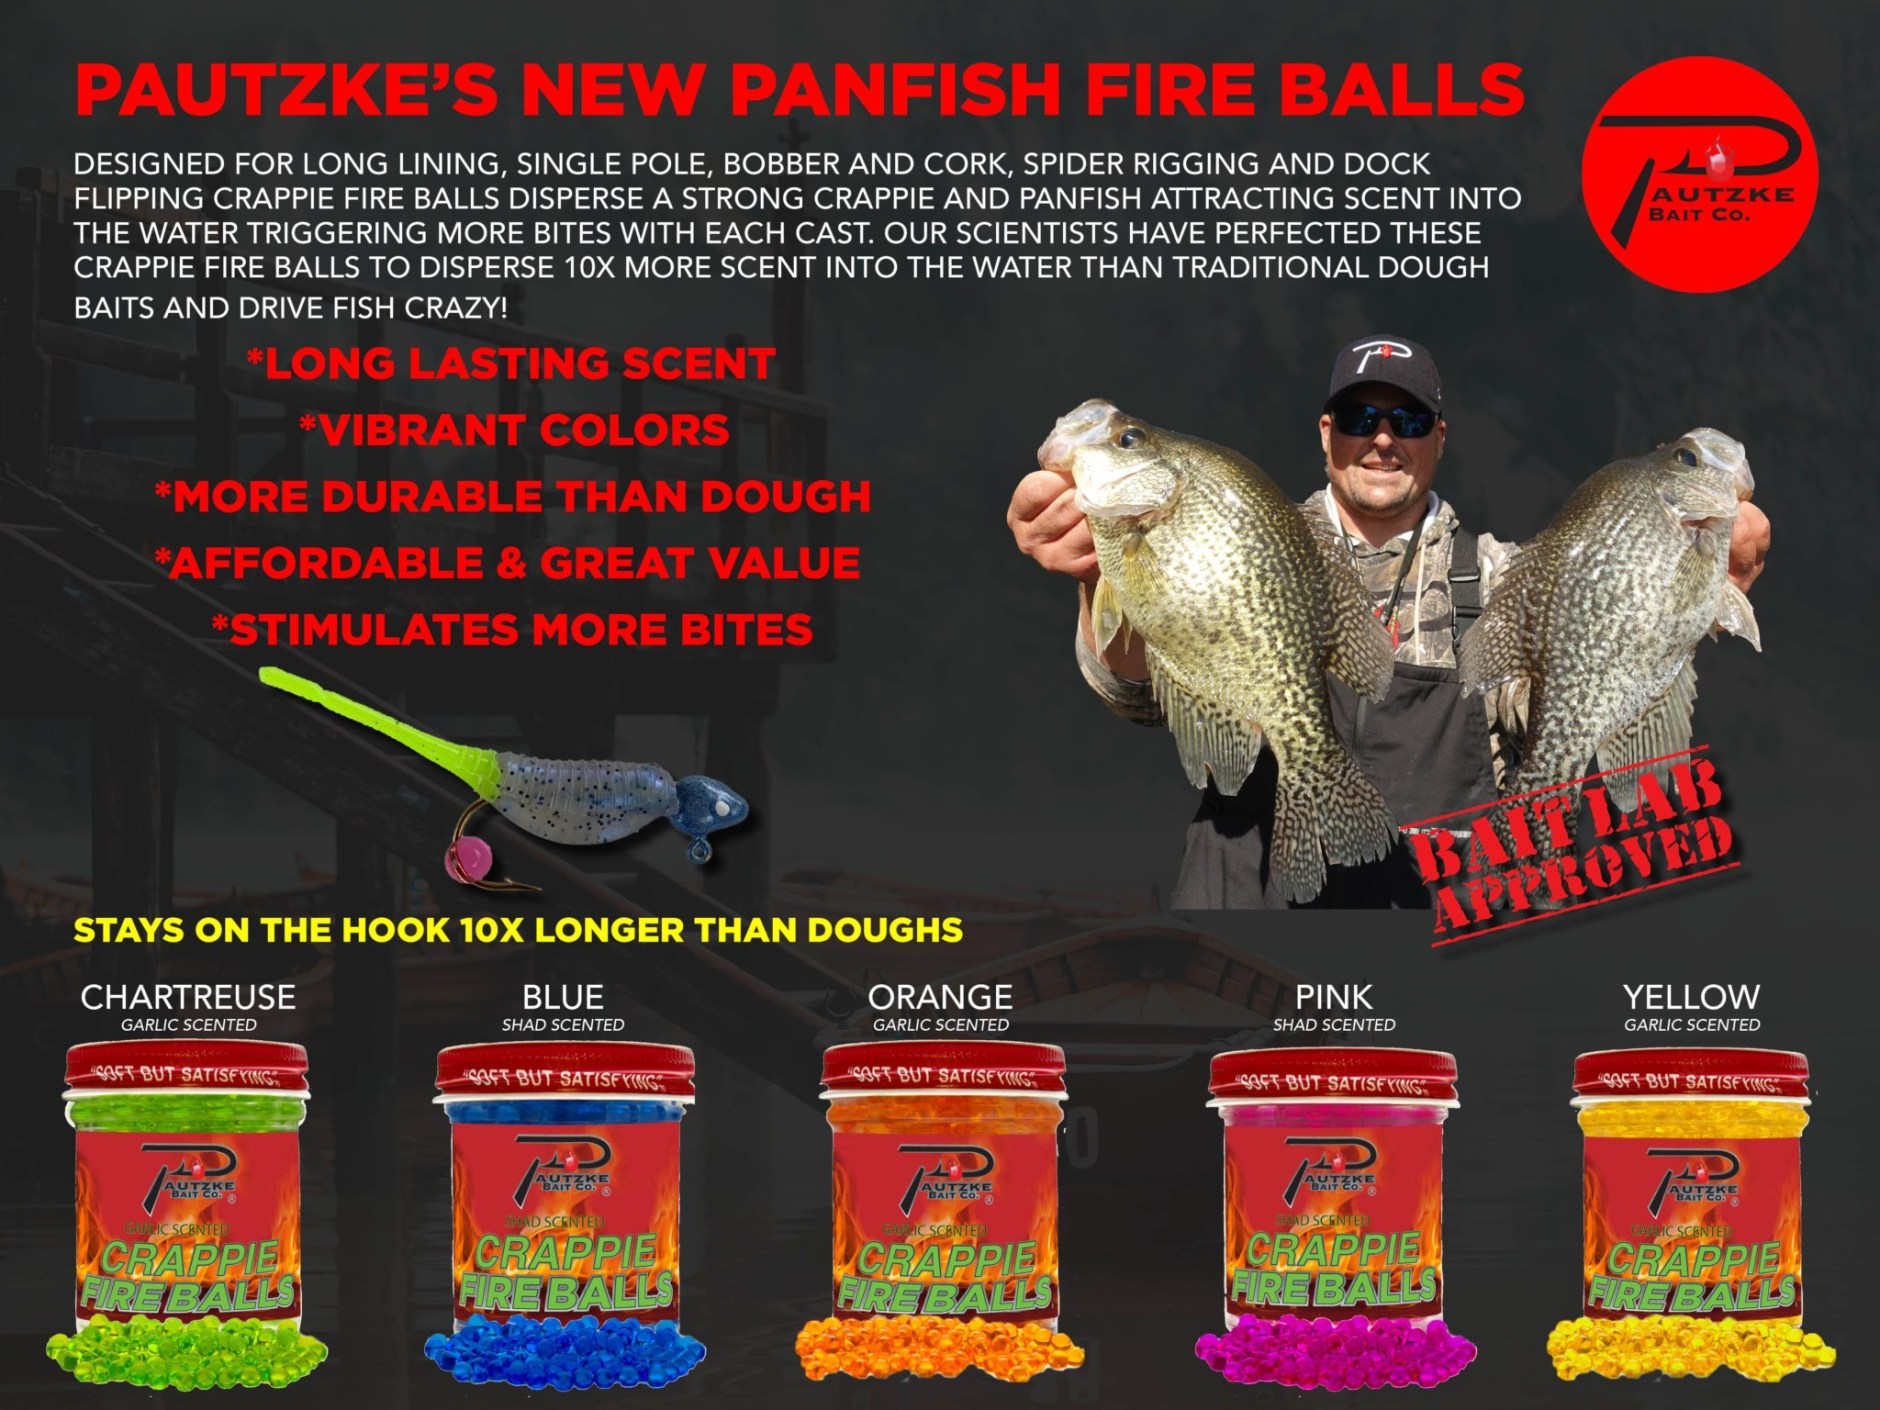 All New Pautzke Crappie Fire Balls